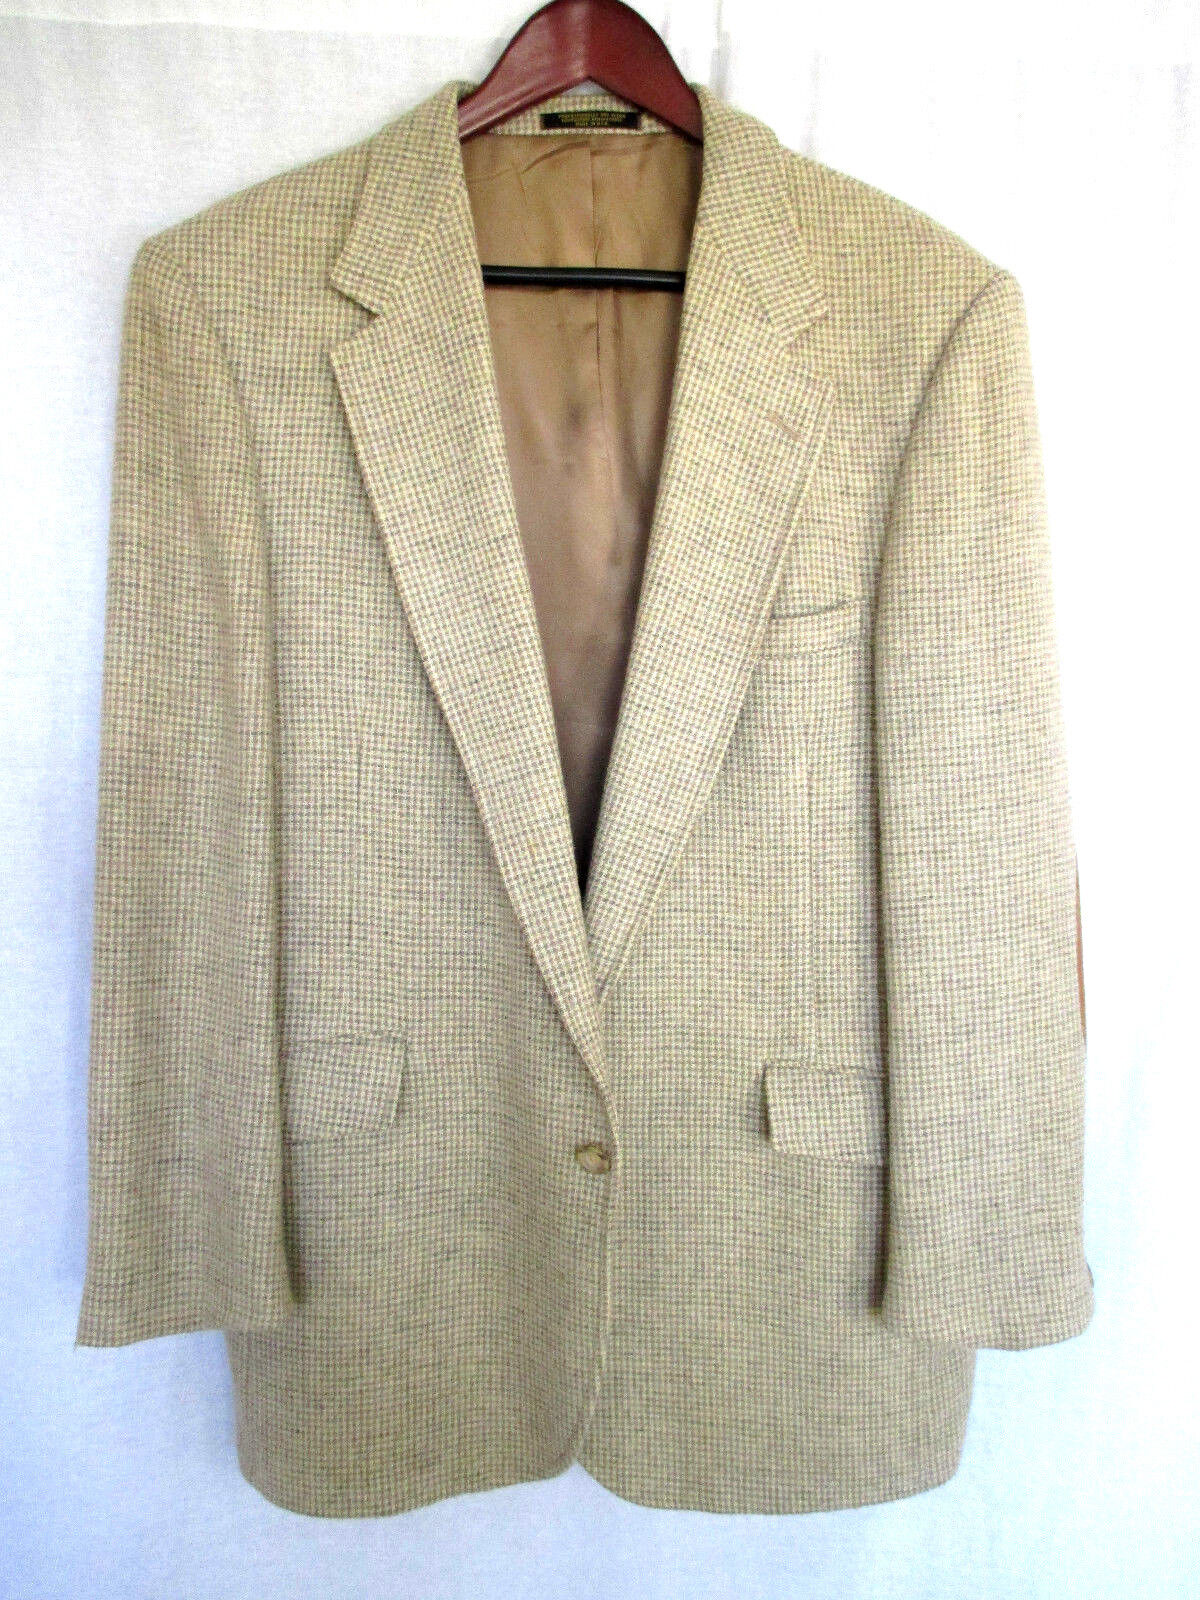 Evan Picone 44R  Herren Sport Coat Beige Houndstooth Vintage Chamois Elbow Patches